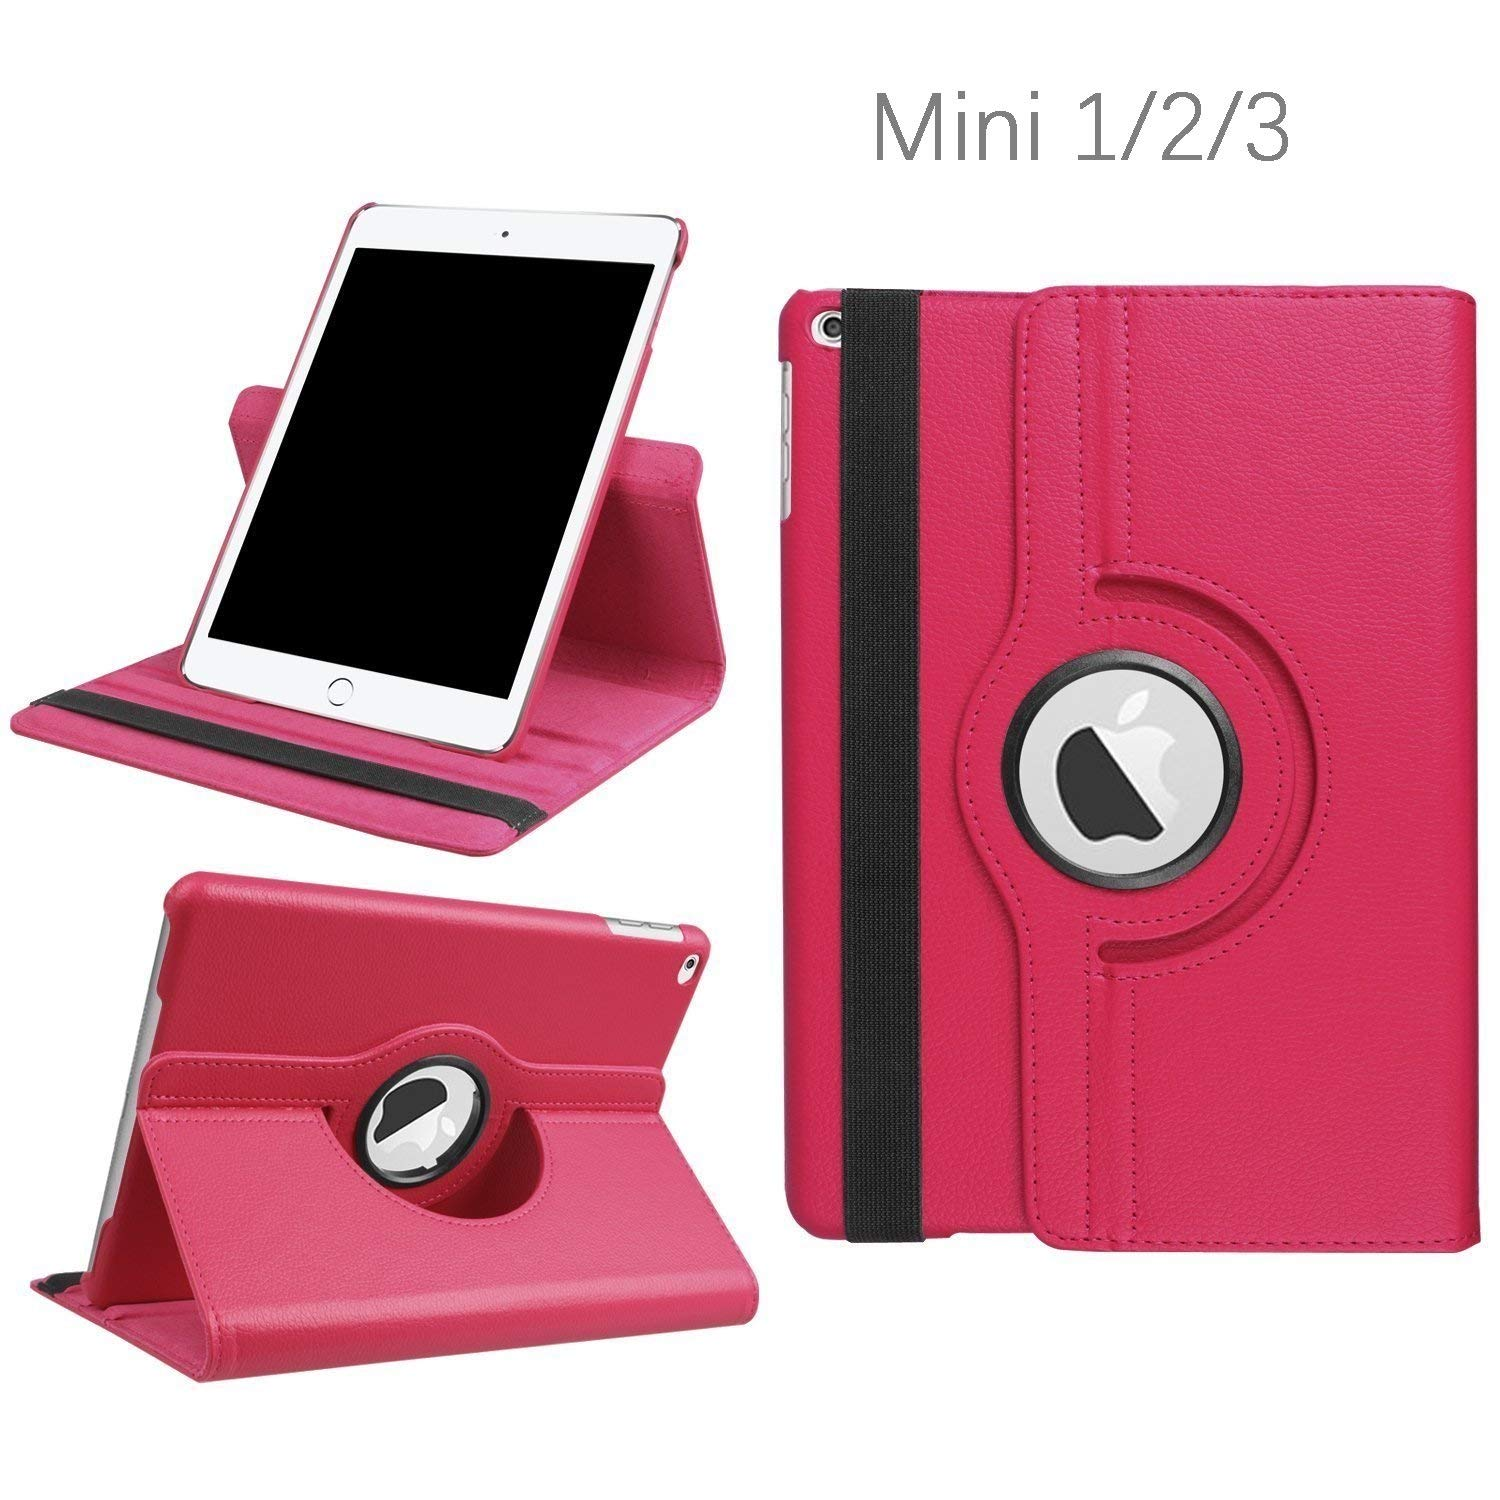 Case For <font><b>iPad</b></font> <font><b>Mini</b></font> 1 2 3 Stand Holder 360 Degrees Rotating PU Leather Flip Cover Cases Smart Tablet Case <font><b>A1432</b></font> A1454 A1600 A1490 image